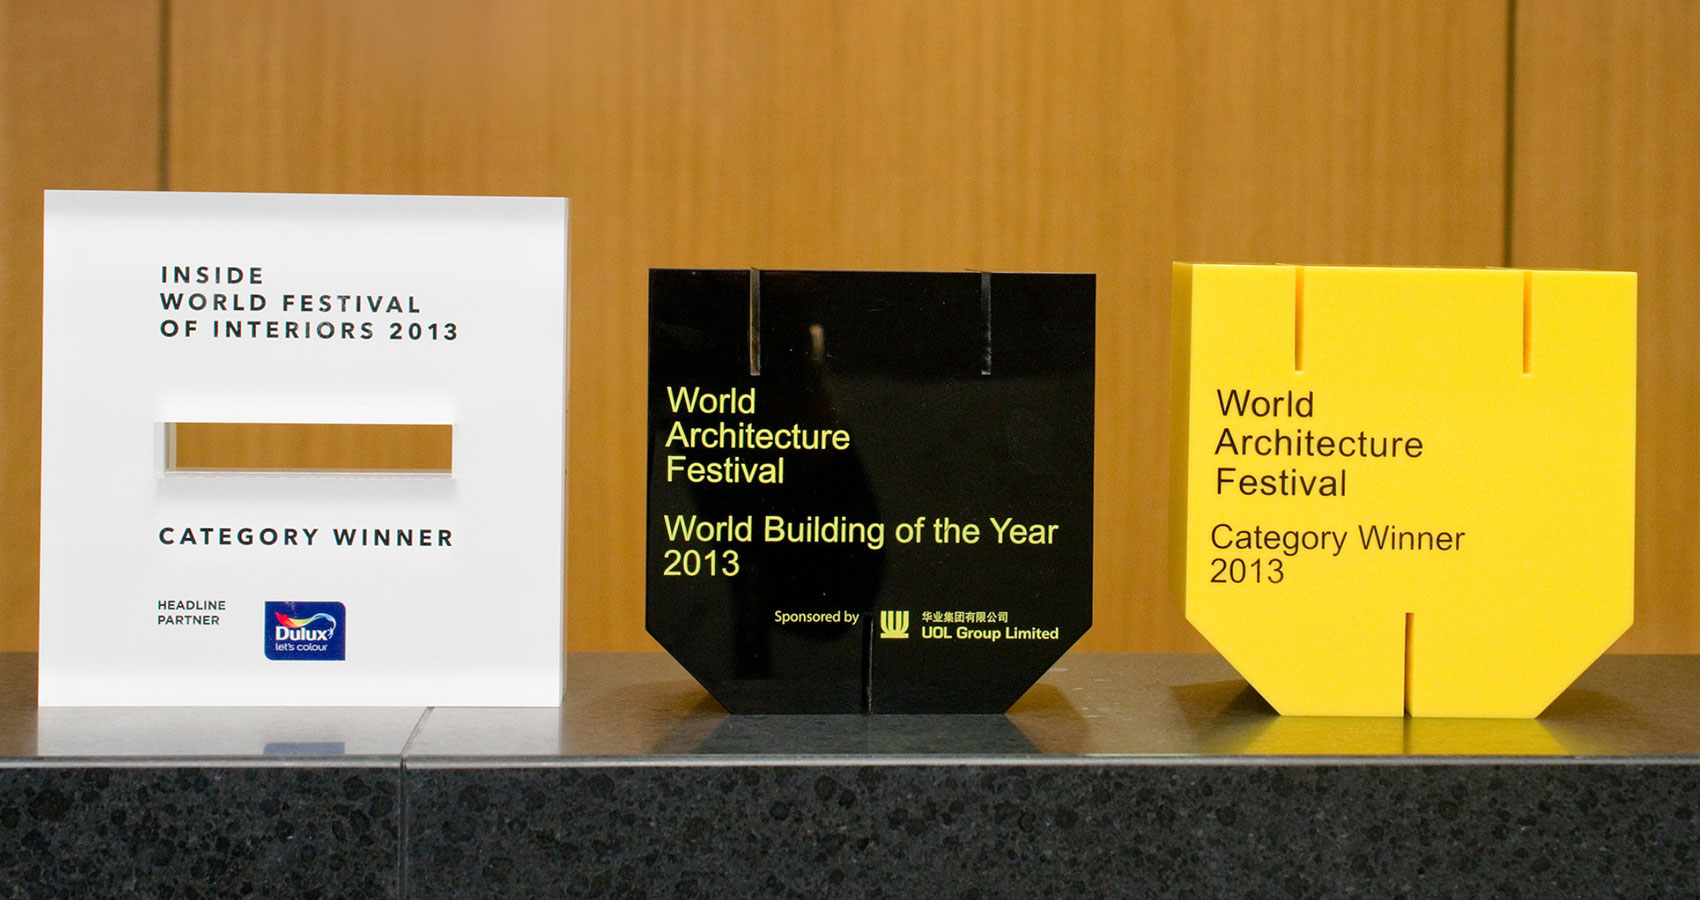 http://rfacdn.nz/artgallery/assets/media/about-building-awards.jpg